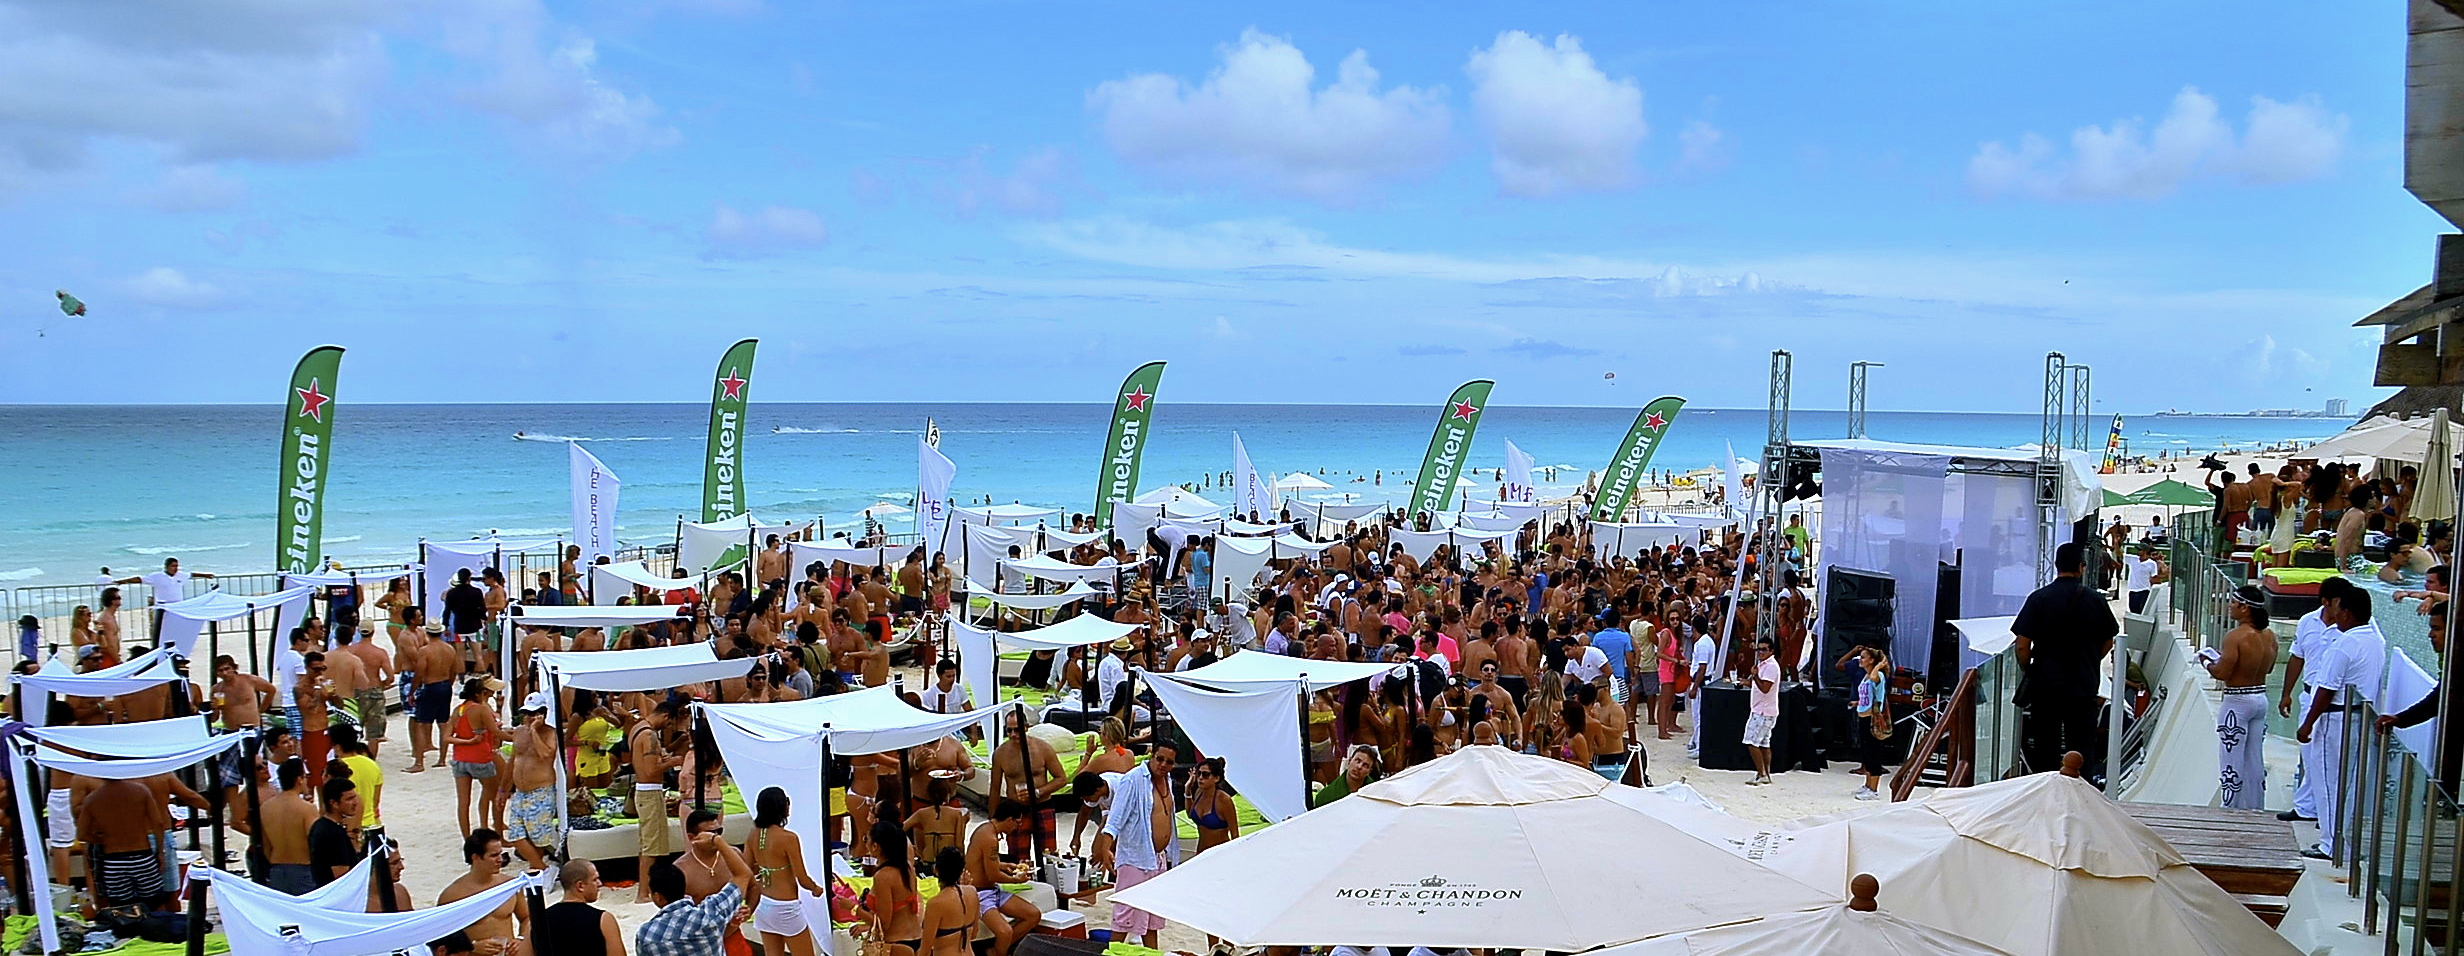 The Beach Club Me Cancun Best Beaches In World